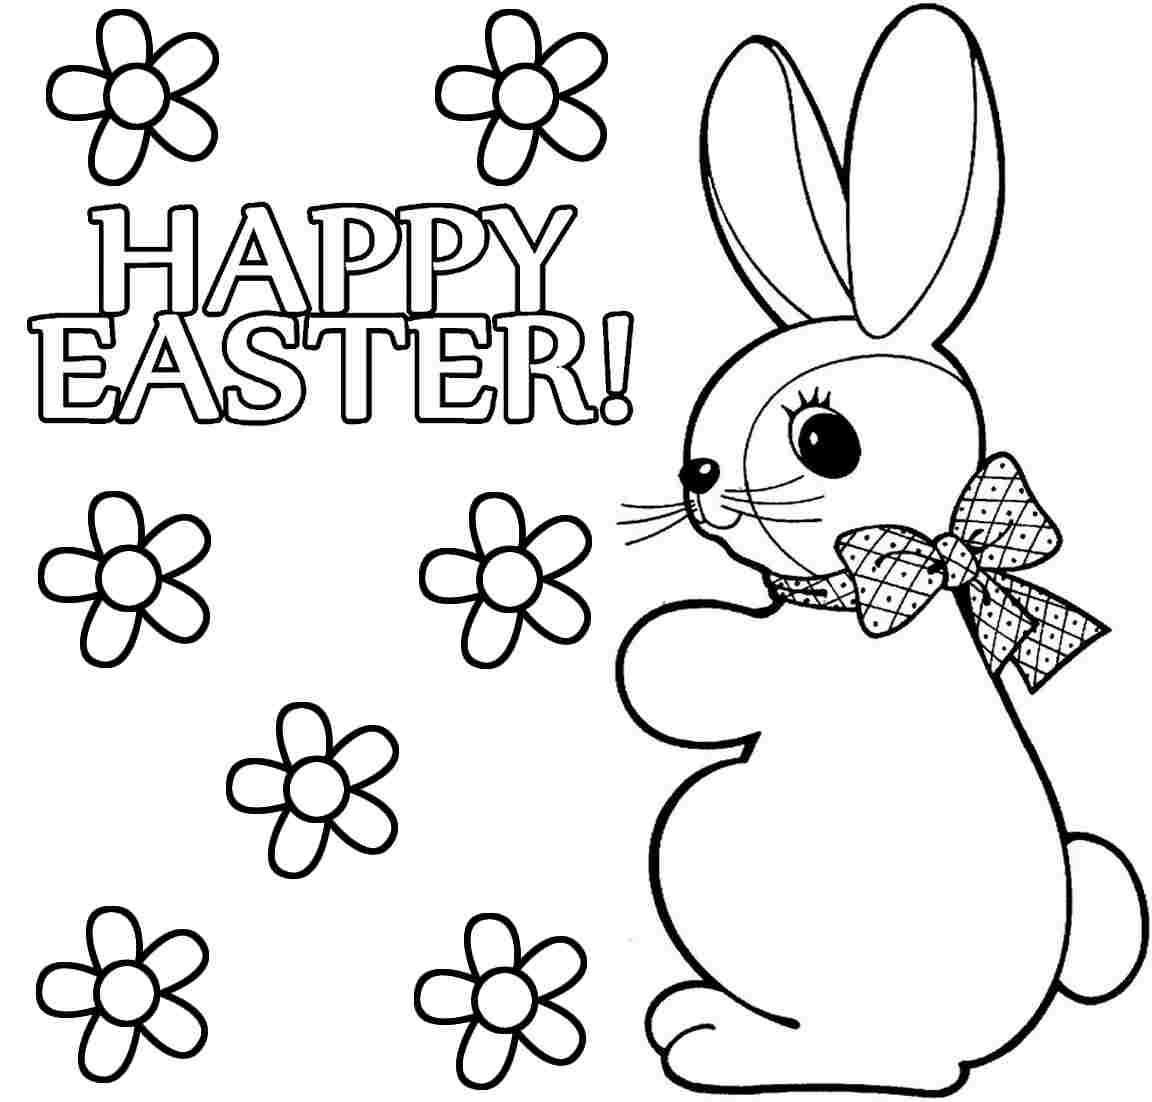 bunny coloring pages cute bunny coloring pages to download and print for free bunny pages coloring